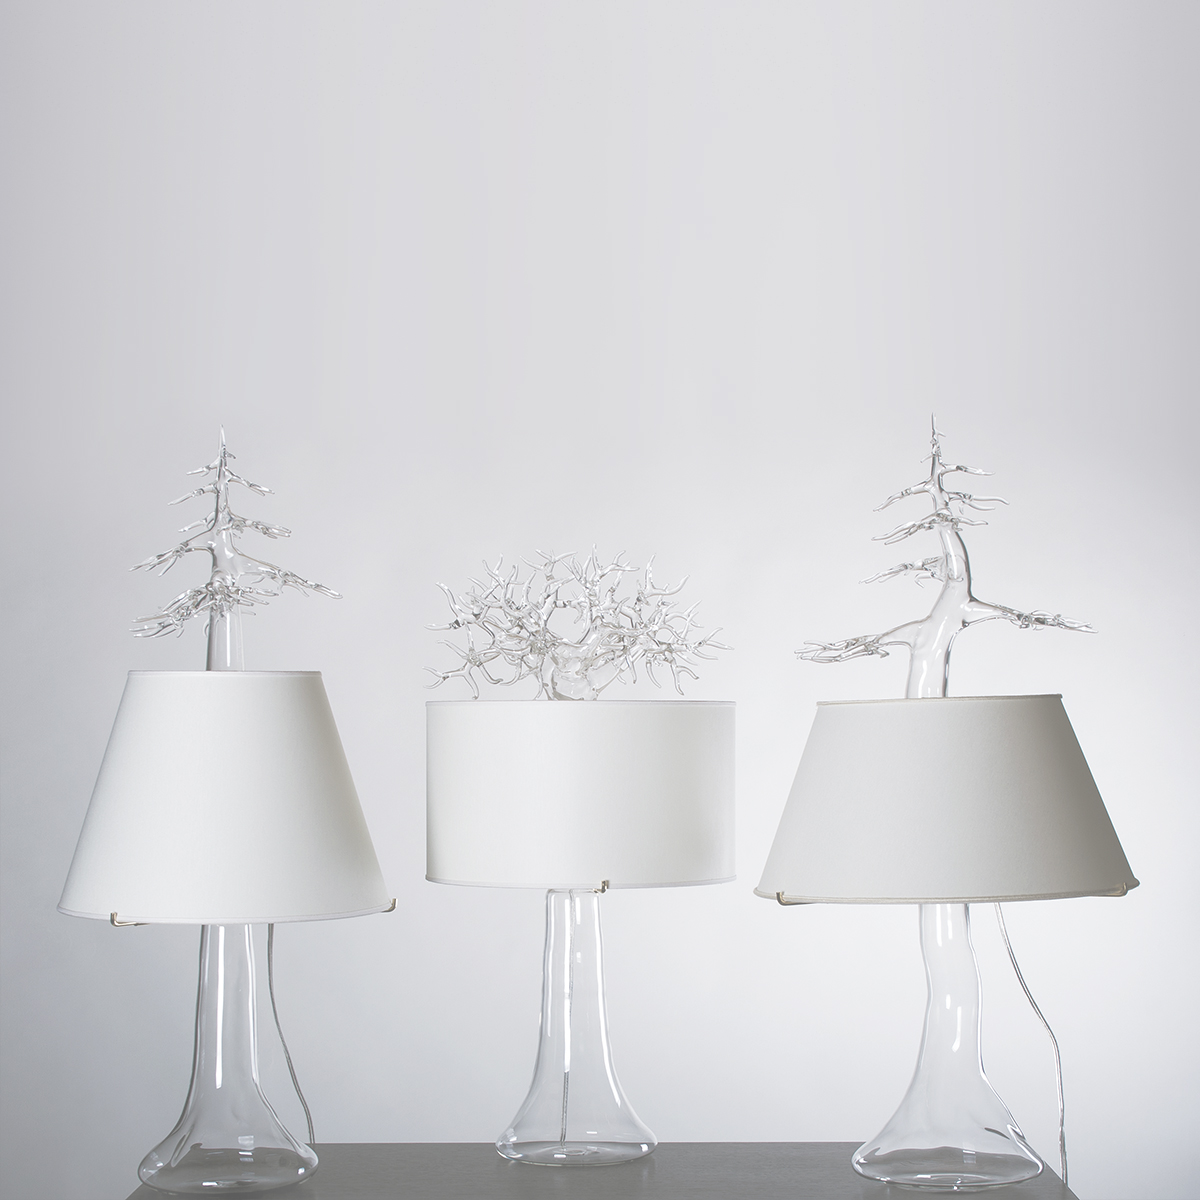 Hand-blown glass table lamps